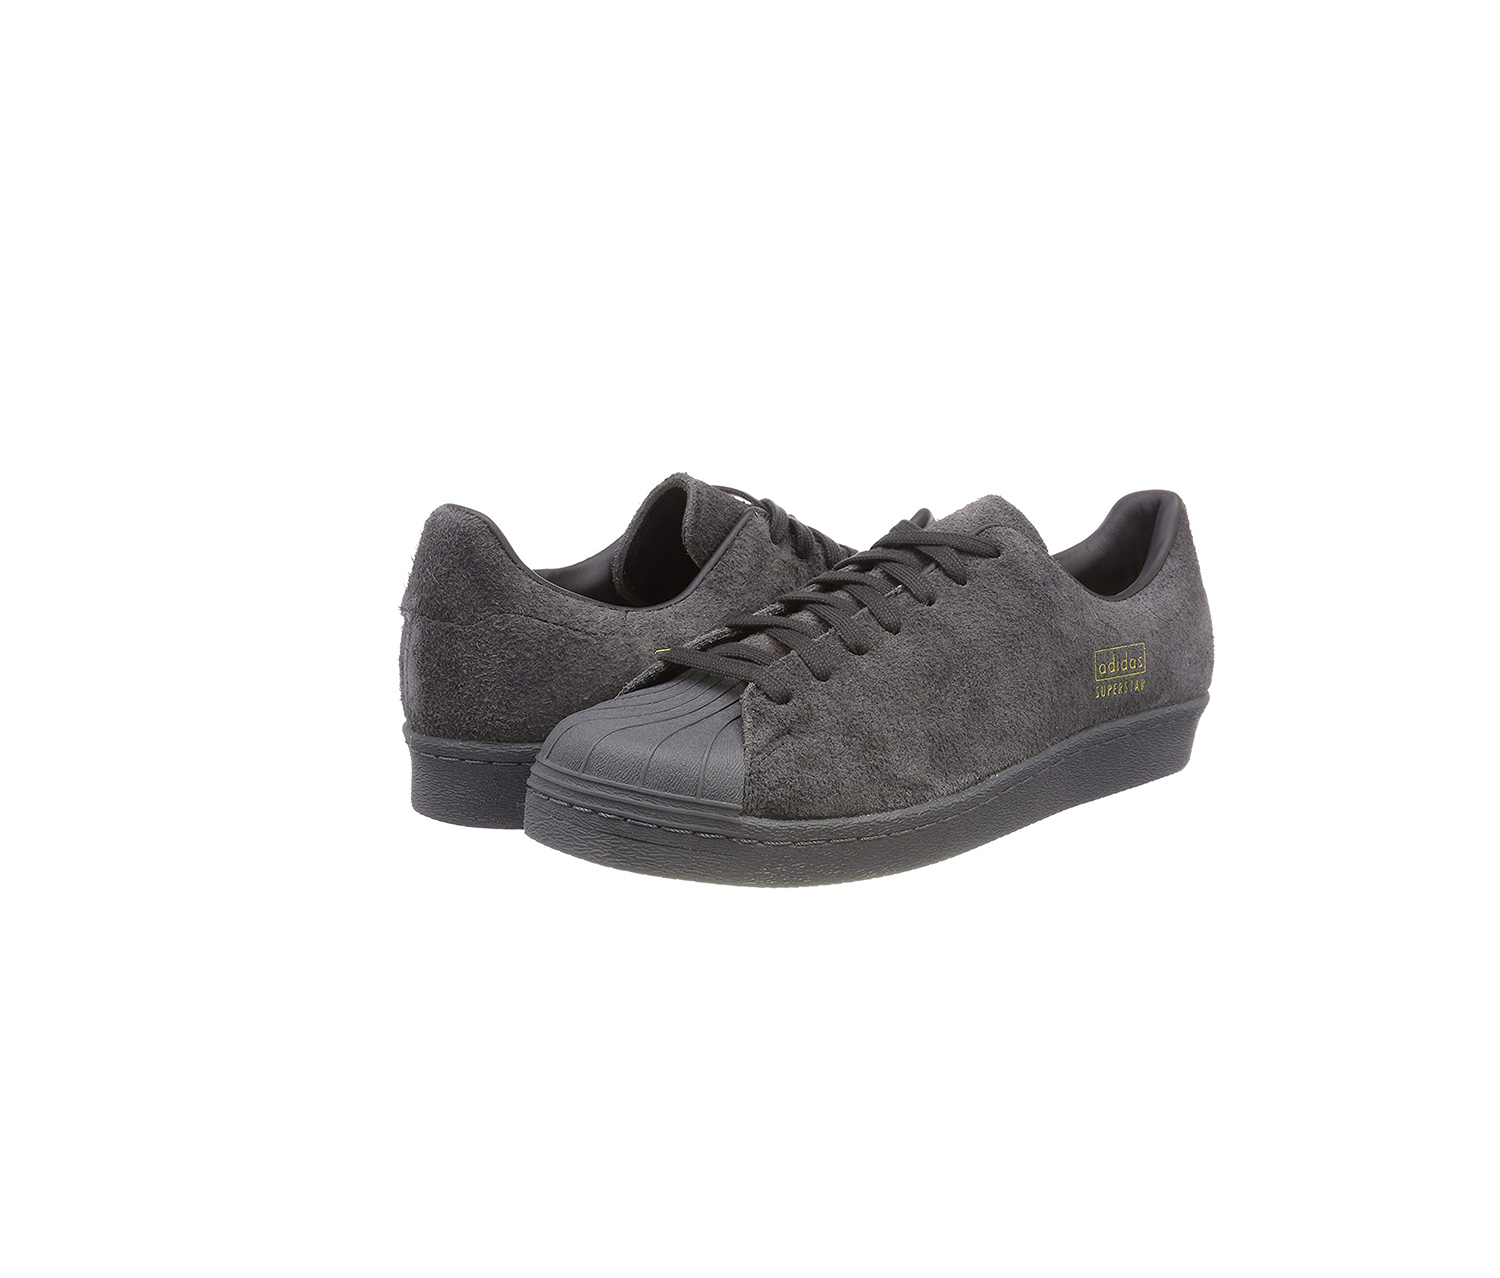 Men's Superstar Sneakers, Gray